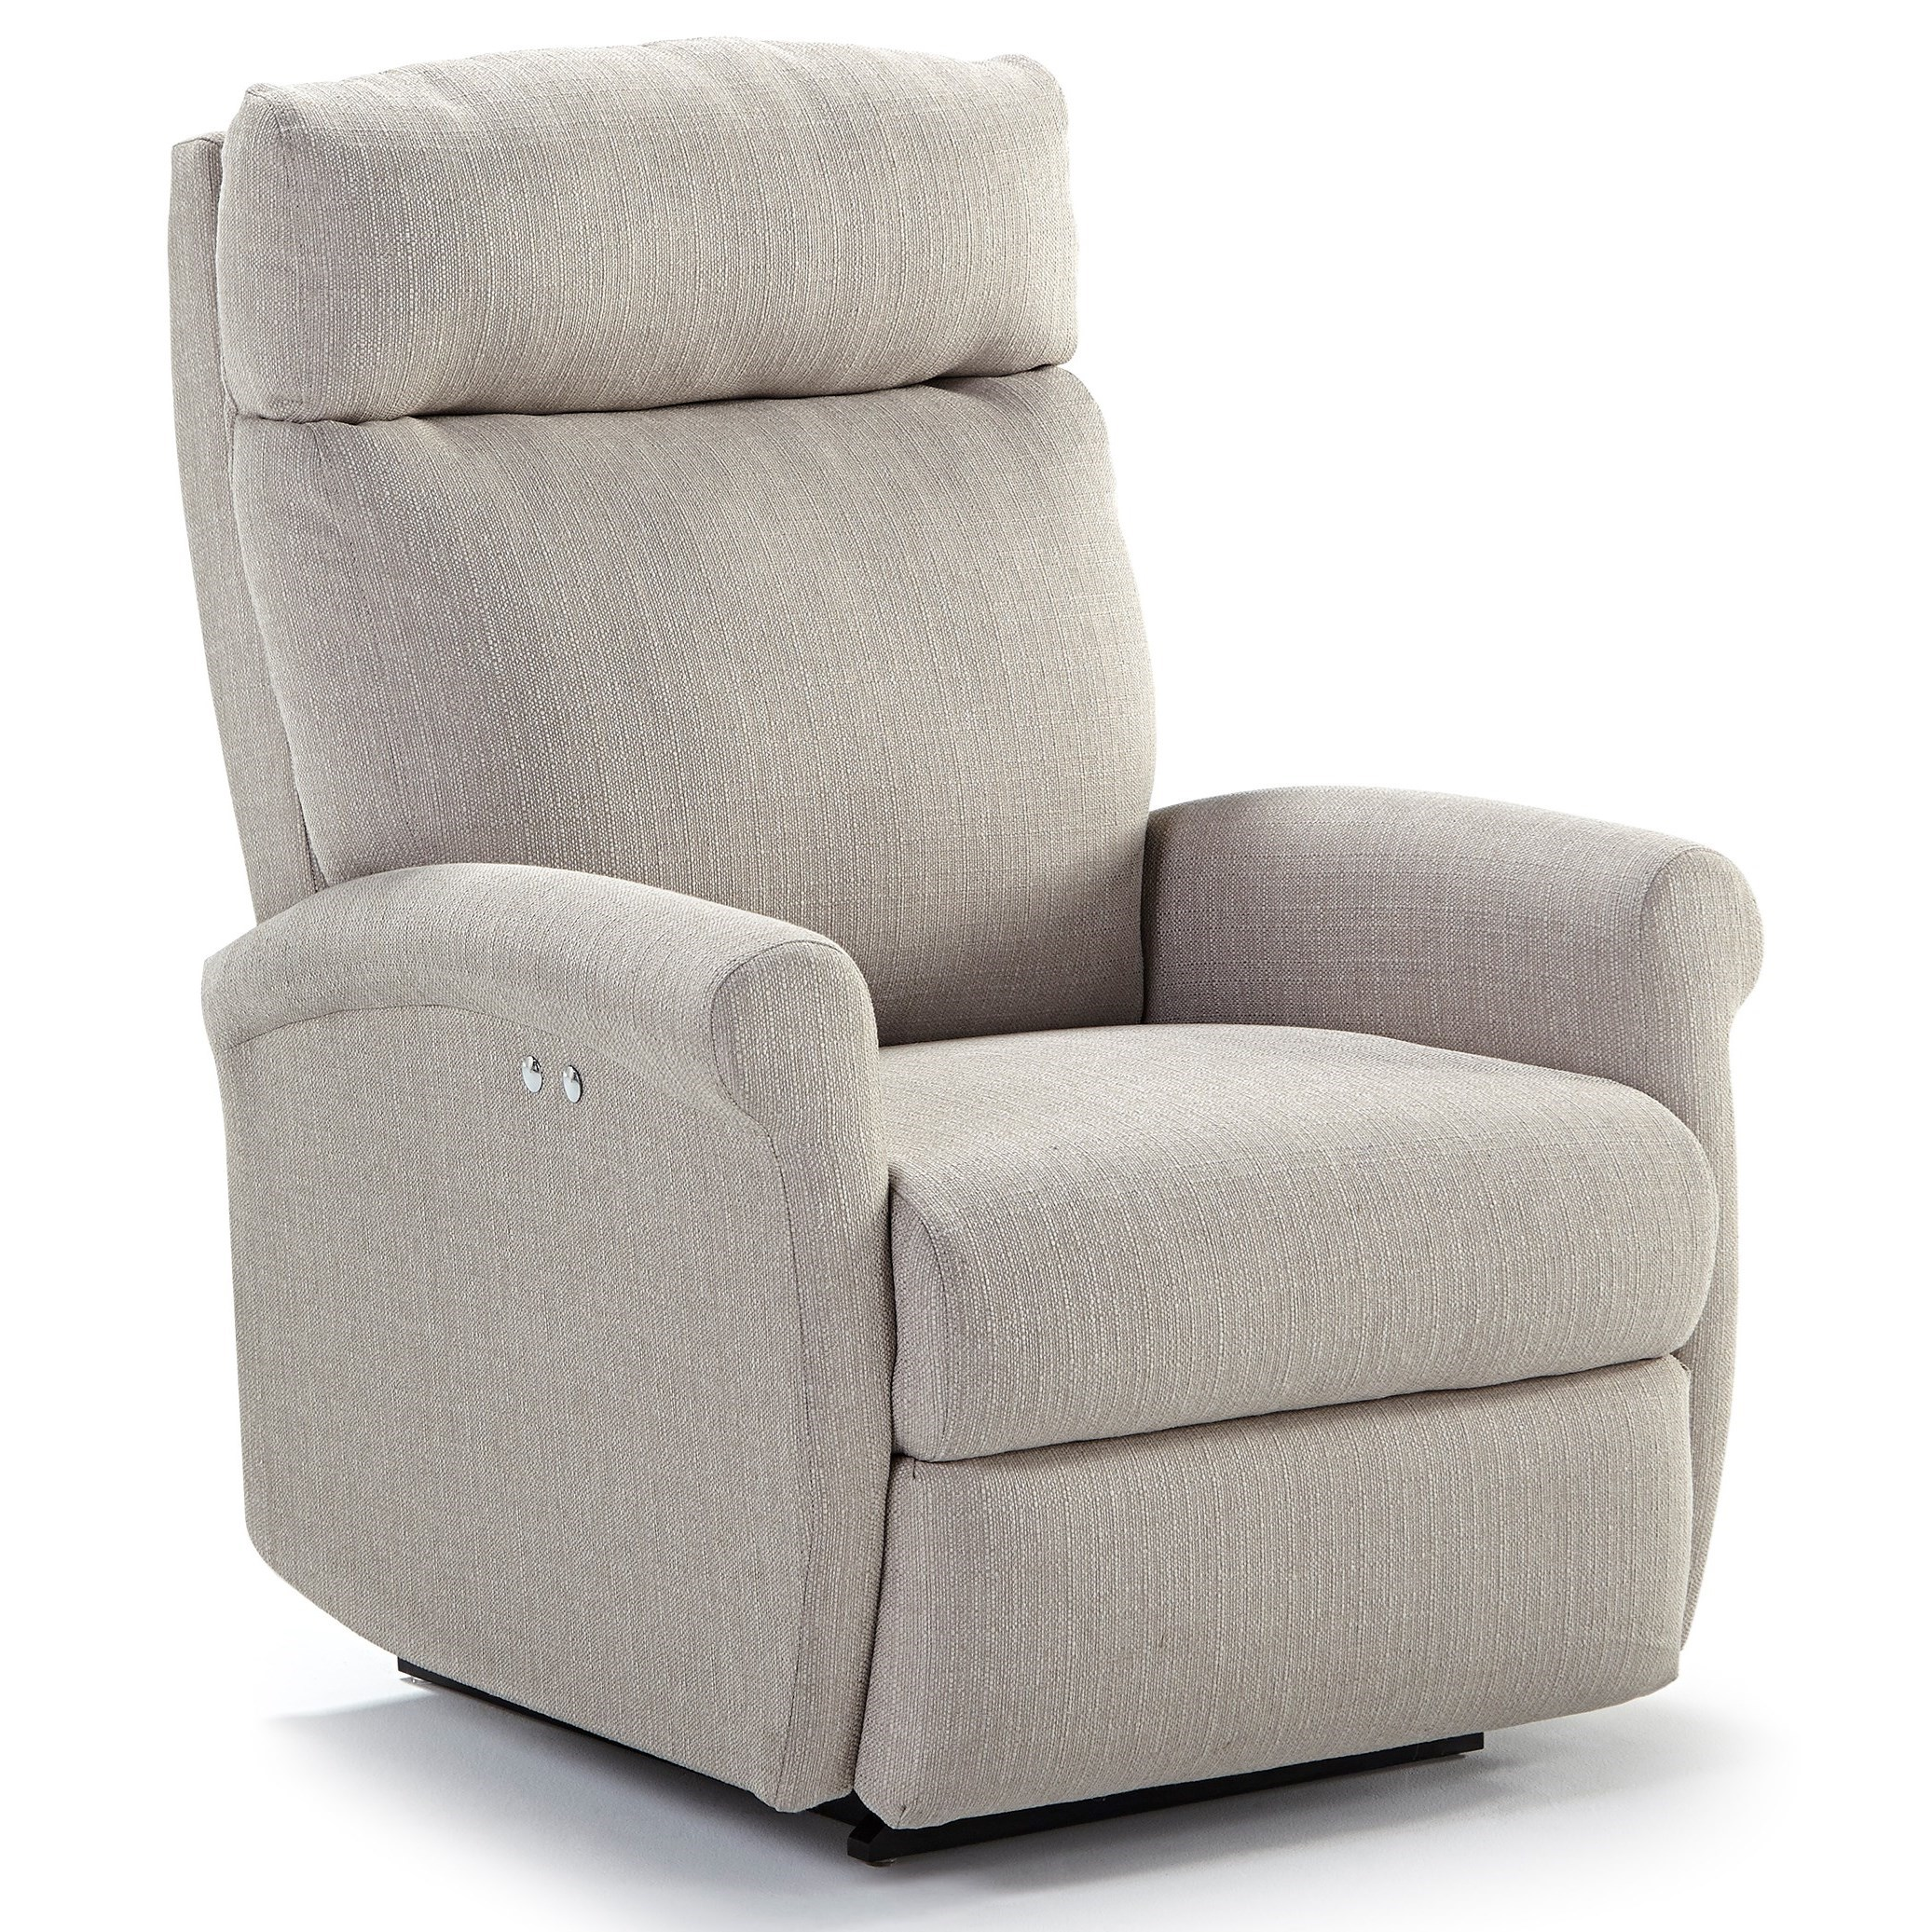 Best Home Furnishings Recliners - Petite Power Space Saver Recliner - Item Number: 1NP04-21609